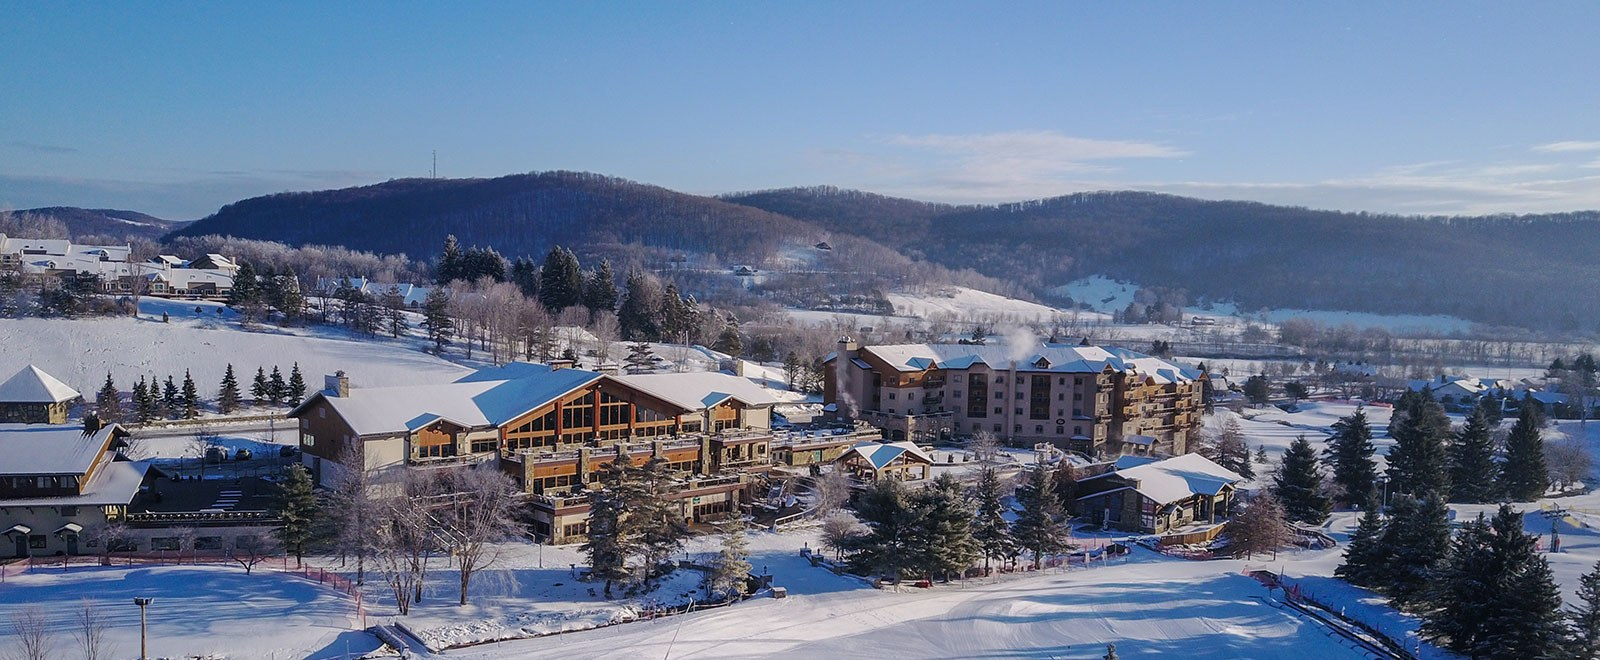 Holiday Valley Ski Resort  New York Ski Areas Vacation Get Away 905deac1ce